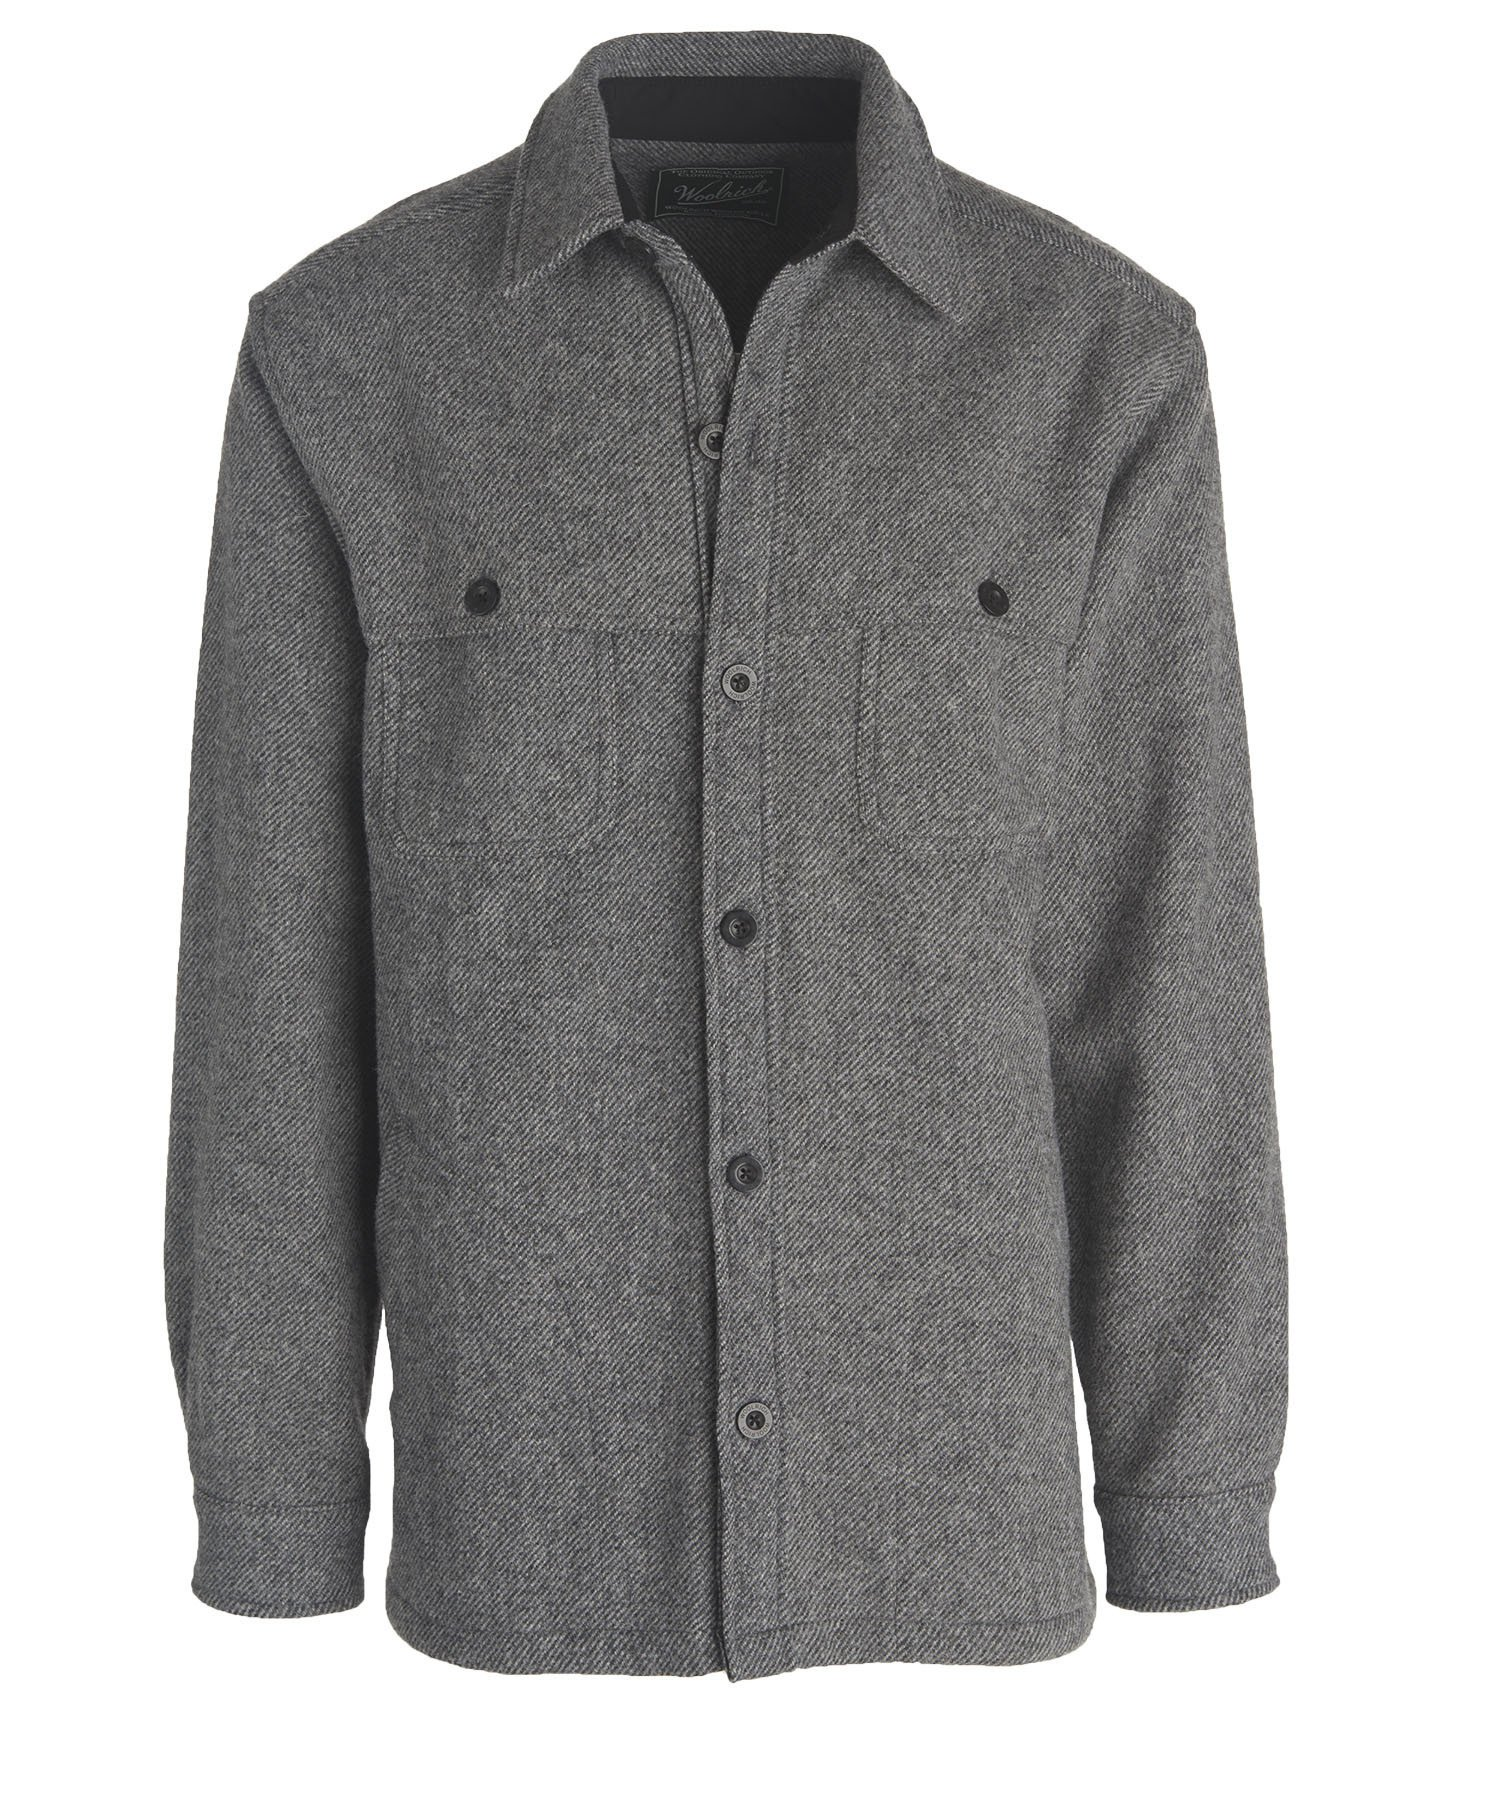 Woolrich Men's Wool Stag Shirt Jacket, New Gray, Large